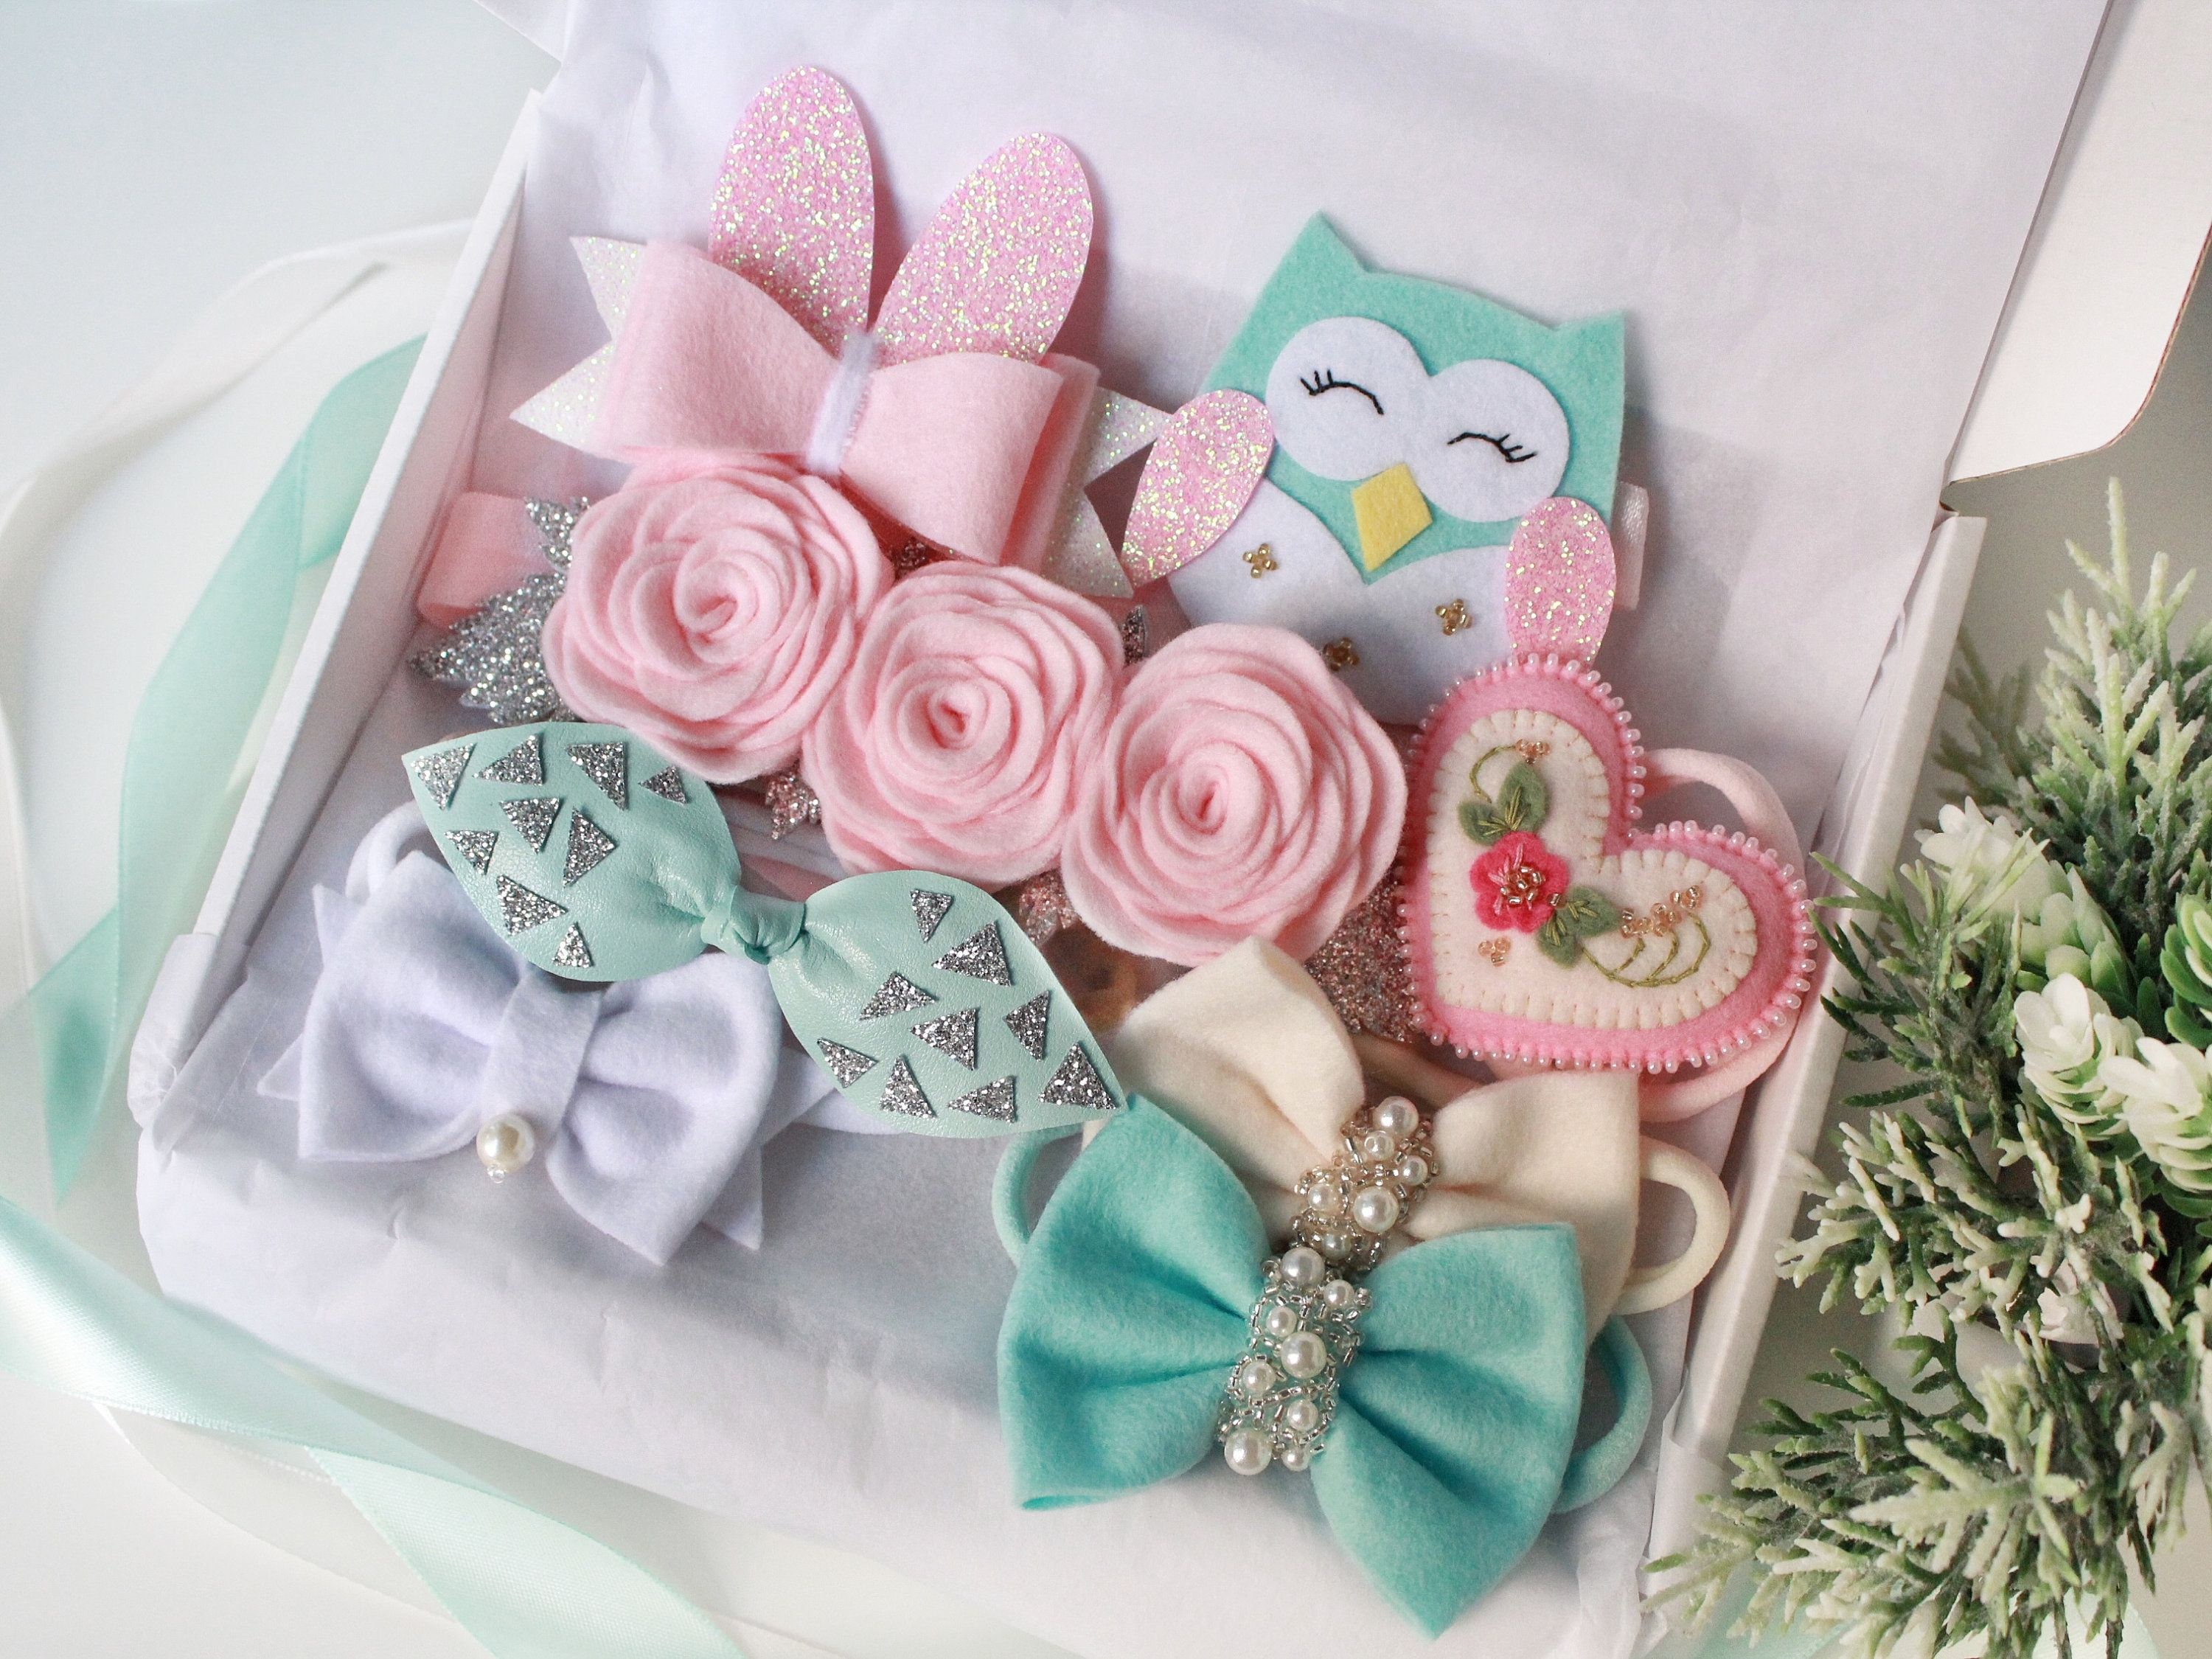 gift for little sister, Valentine's Day gift, gift for baby girl, baby gift box, gift for the niece, headbands set, mint headbands